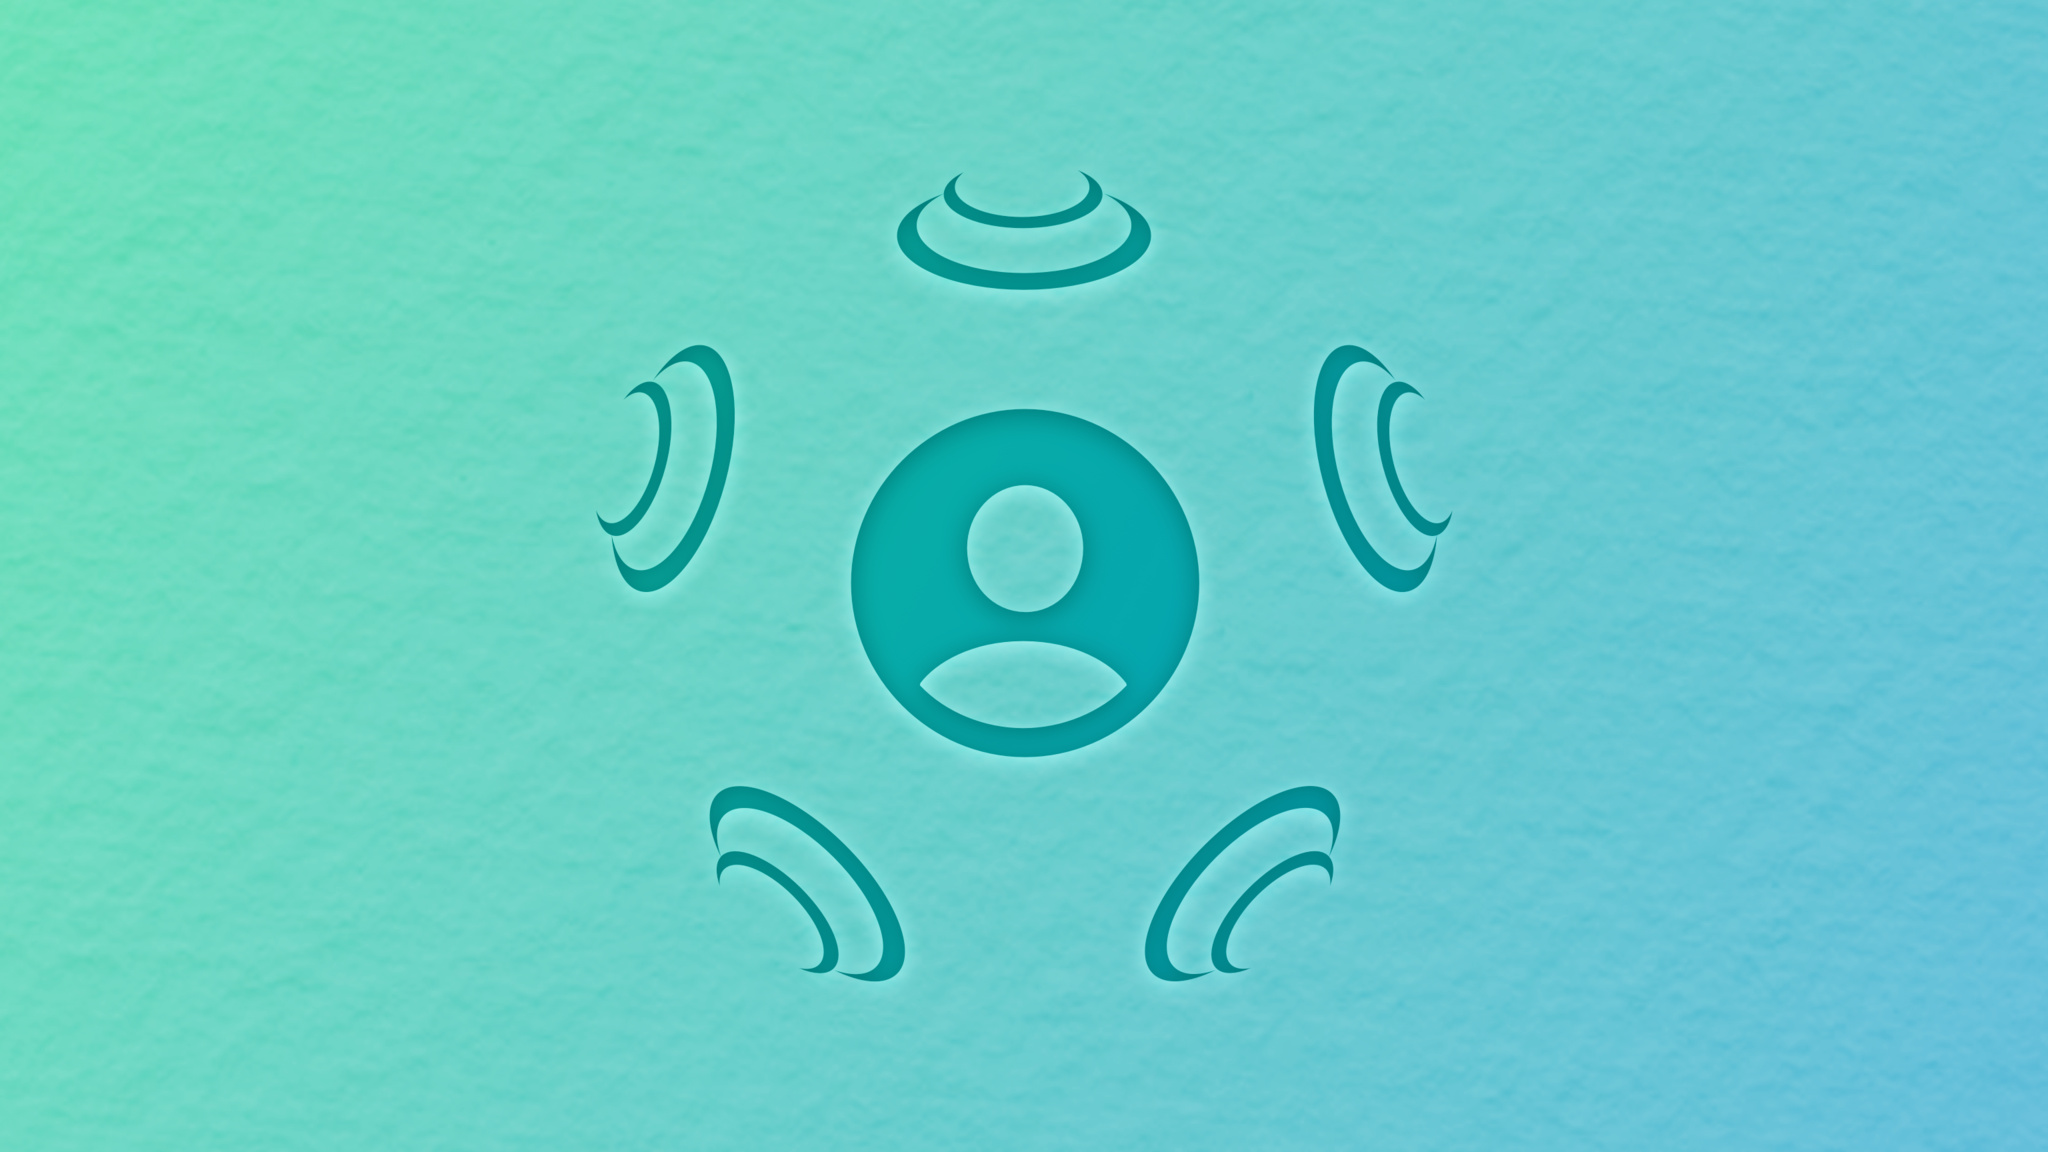 Person SF Symbol surrounded by speaker SF Symbols on a blue-green textured background